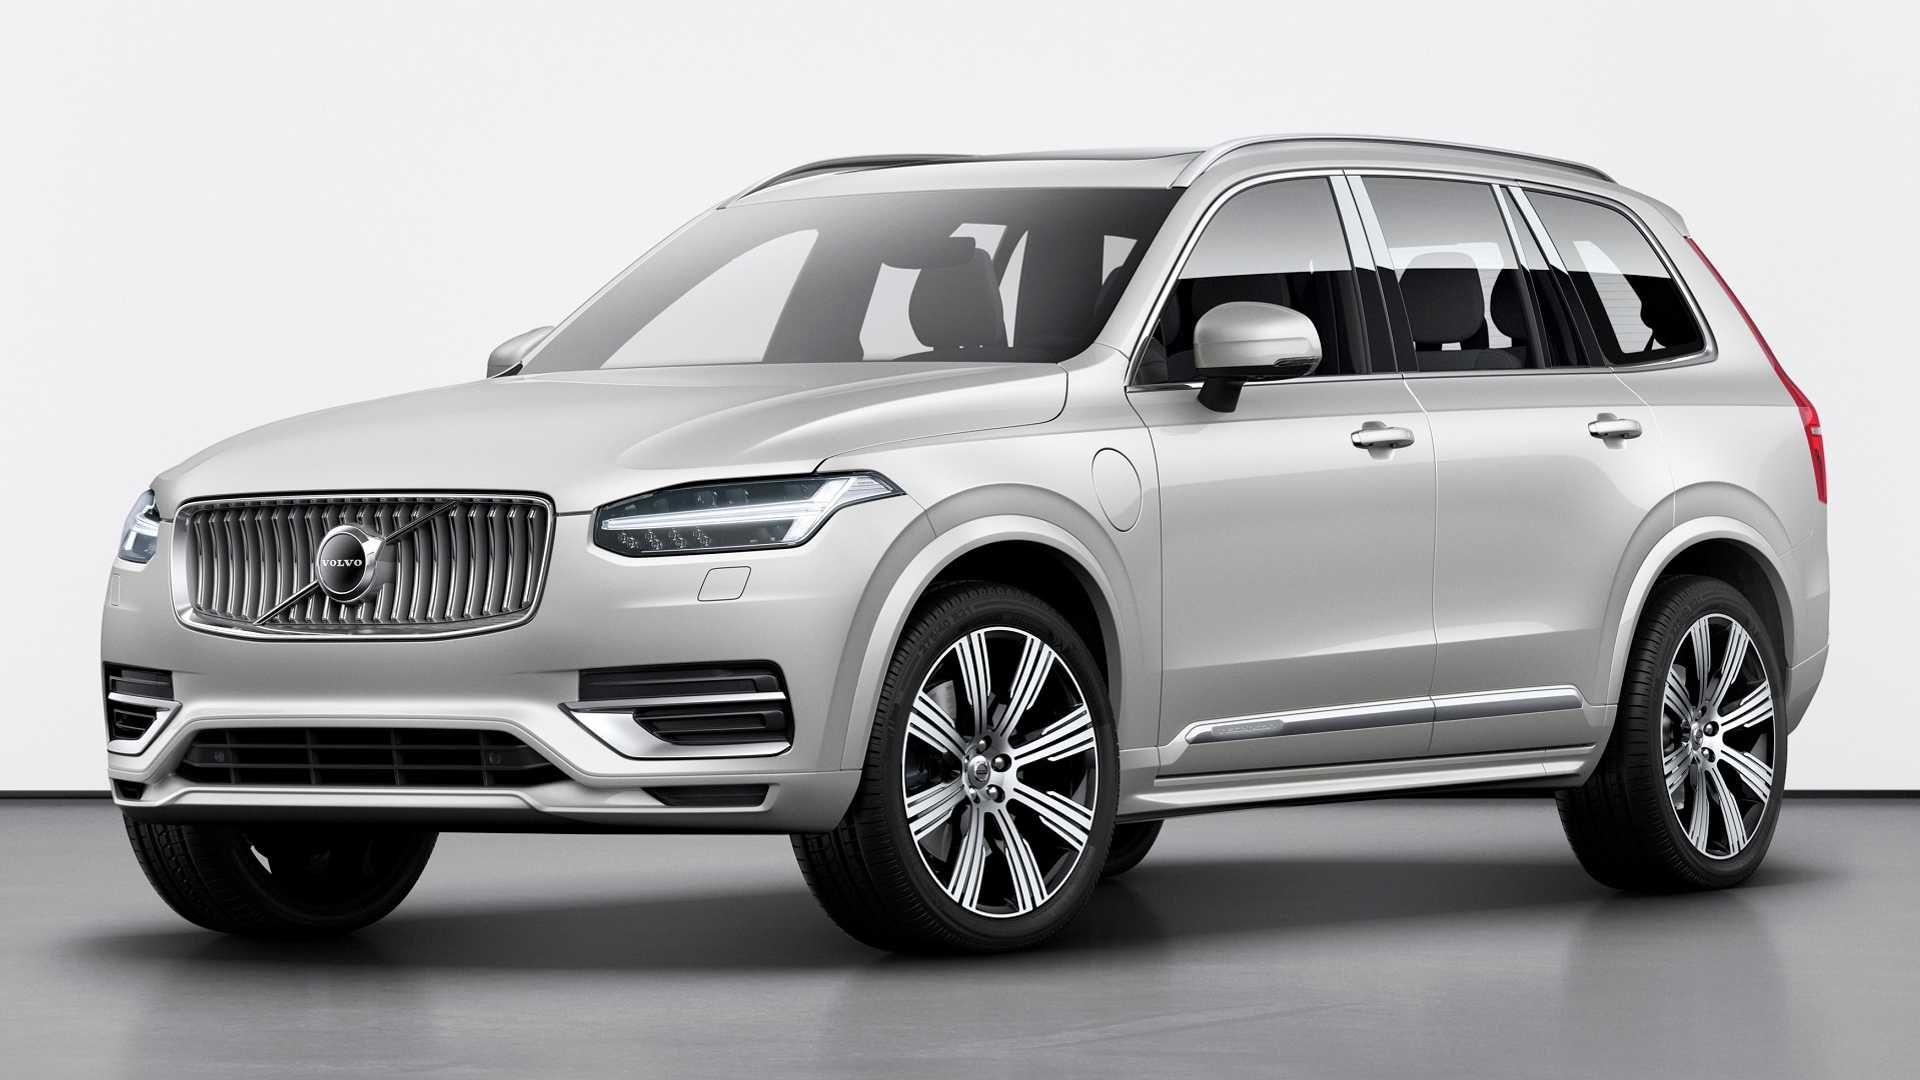 Review Volvo Is Working On A New Model That Will Be The Equivalent Of The Volvo Xc90 2020 Overview Up Whose Sale Is Scheduled F Volvo Xc90 Volvo Suv Volvo